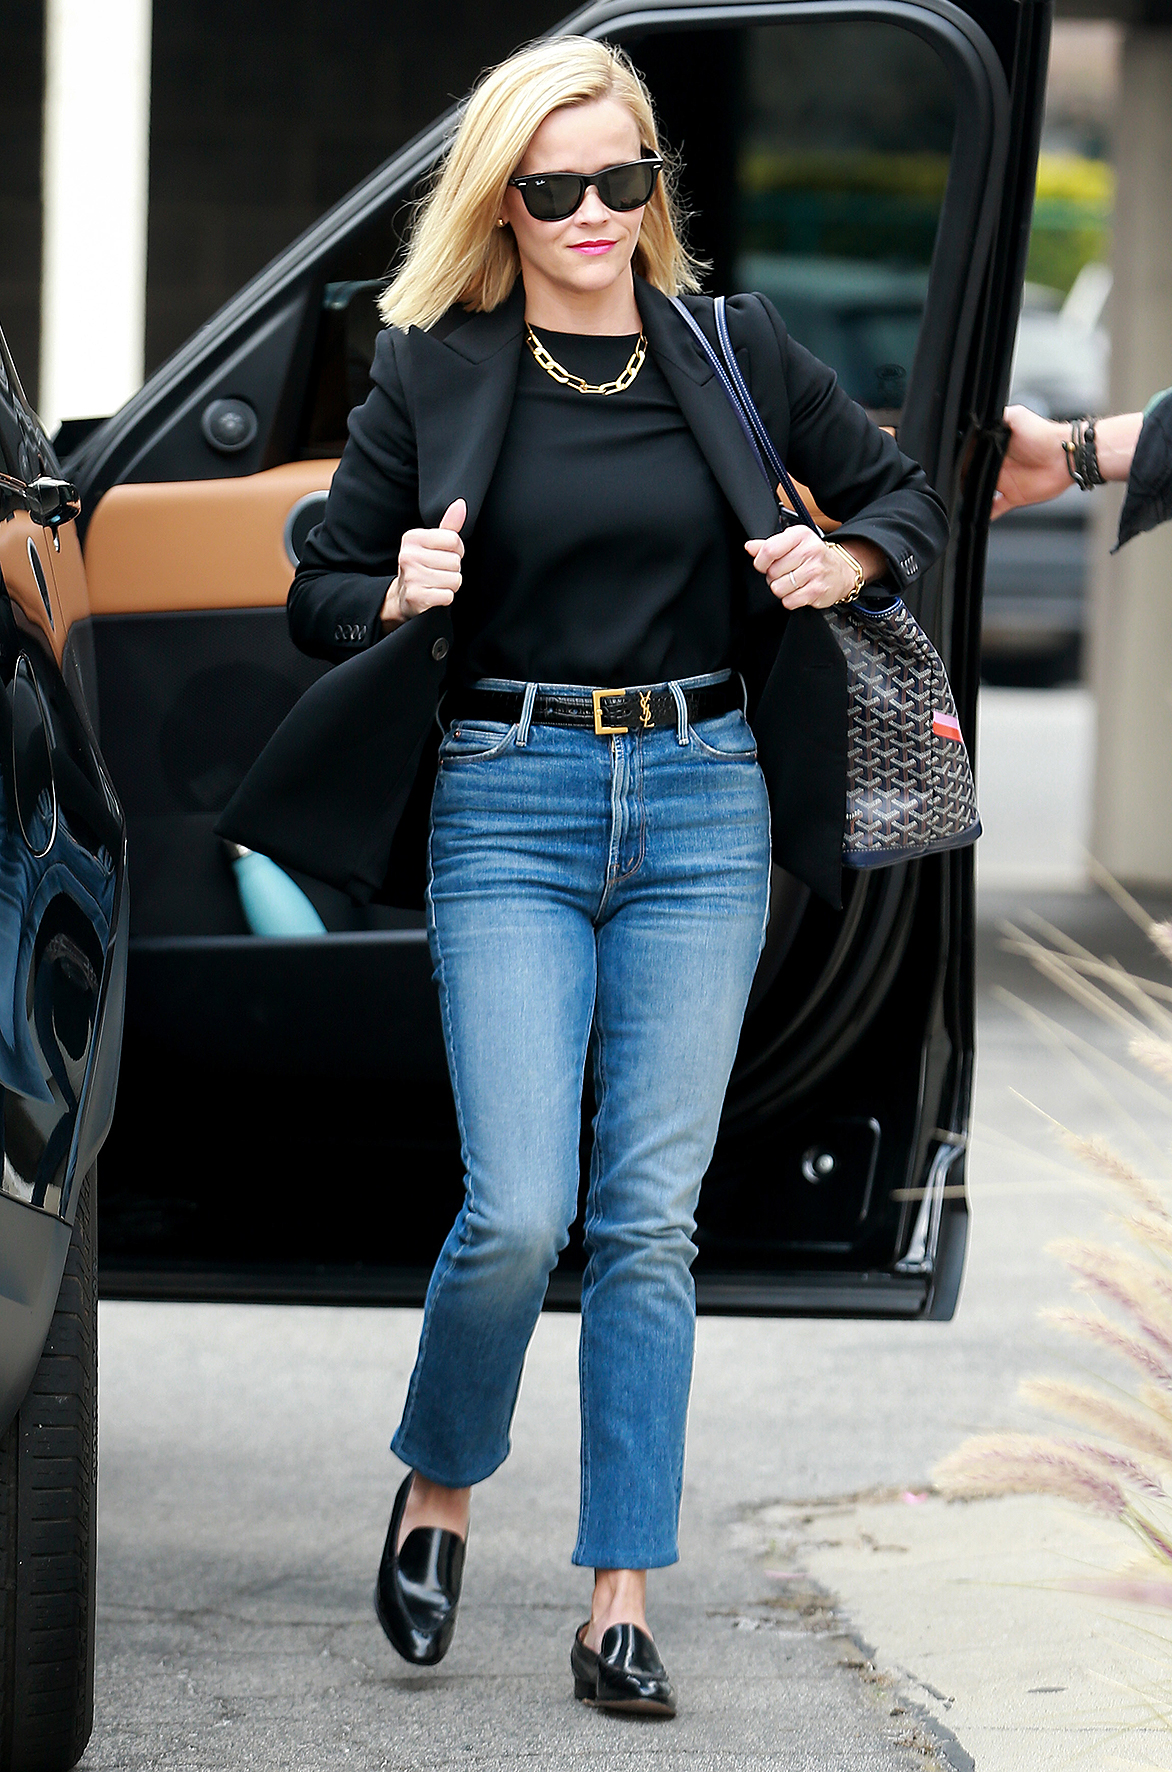 Reese Witherspoon is all smiles as she heads to a business meeting in Los Angeles.